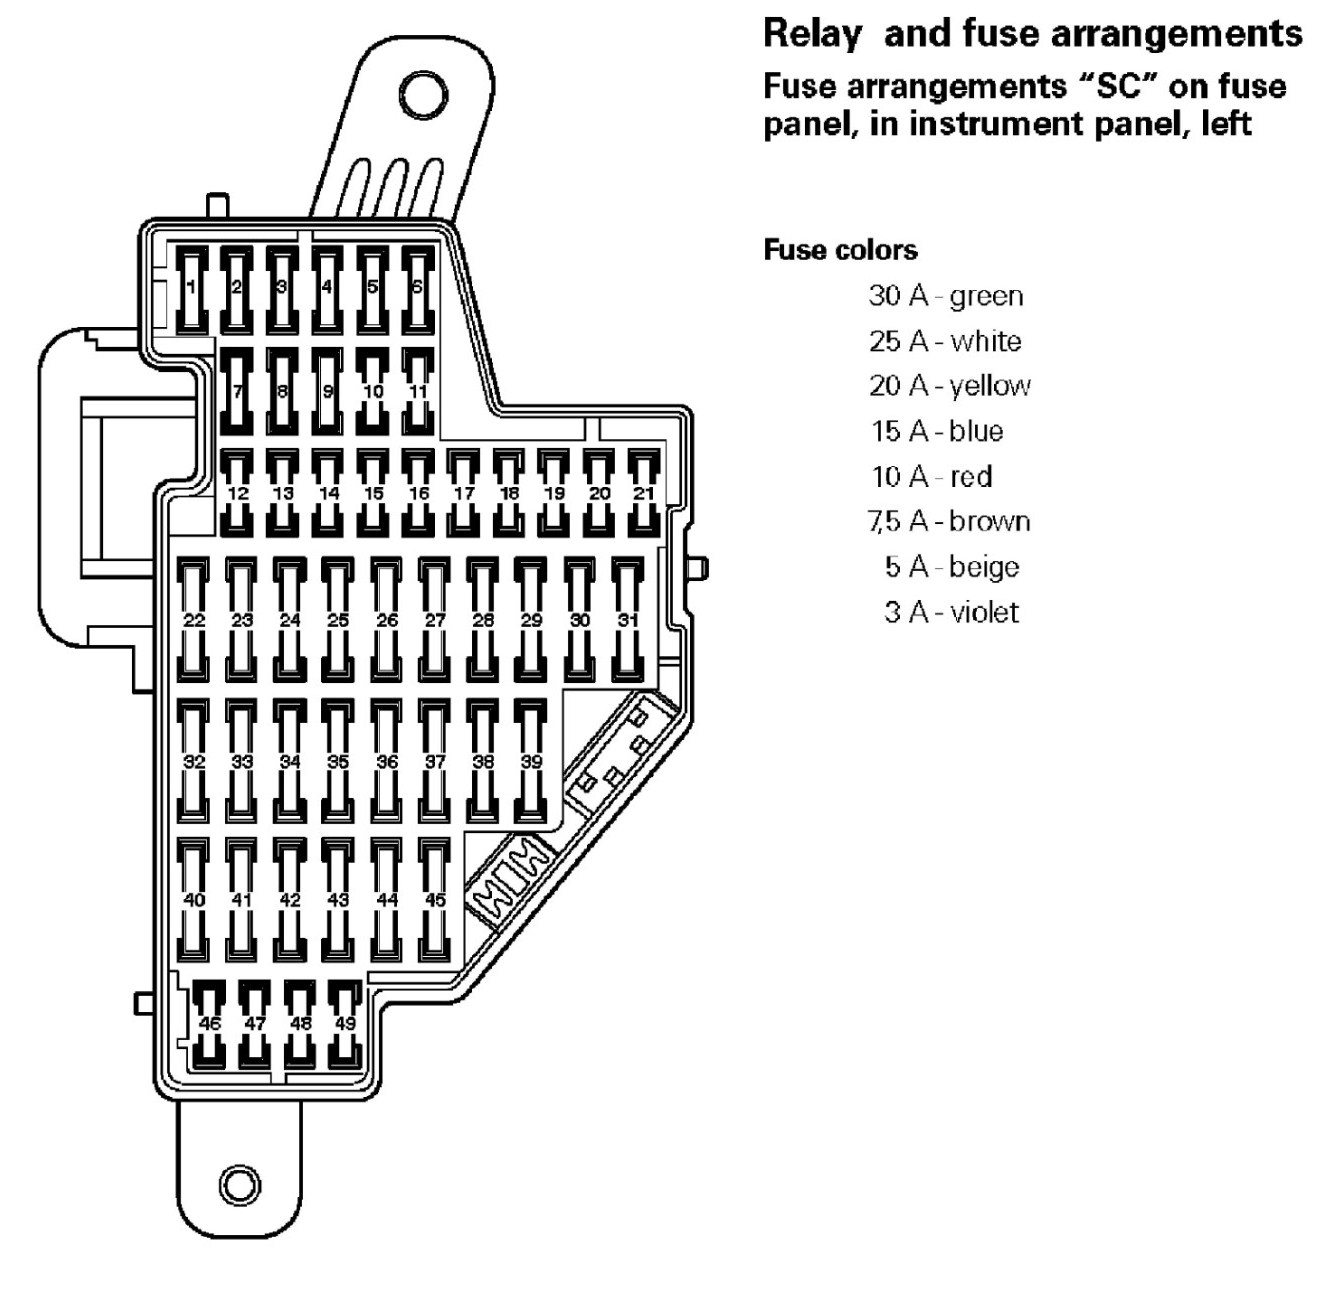 hight resolution of vw jetta 2006 fuse box diagram simple wiring schema 2008 jetta fuse box diagram 2006 jetta fuse box